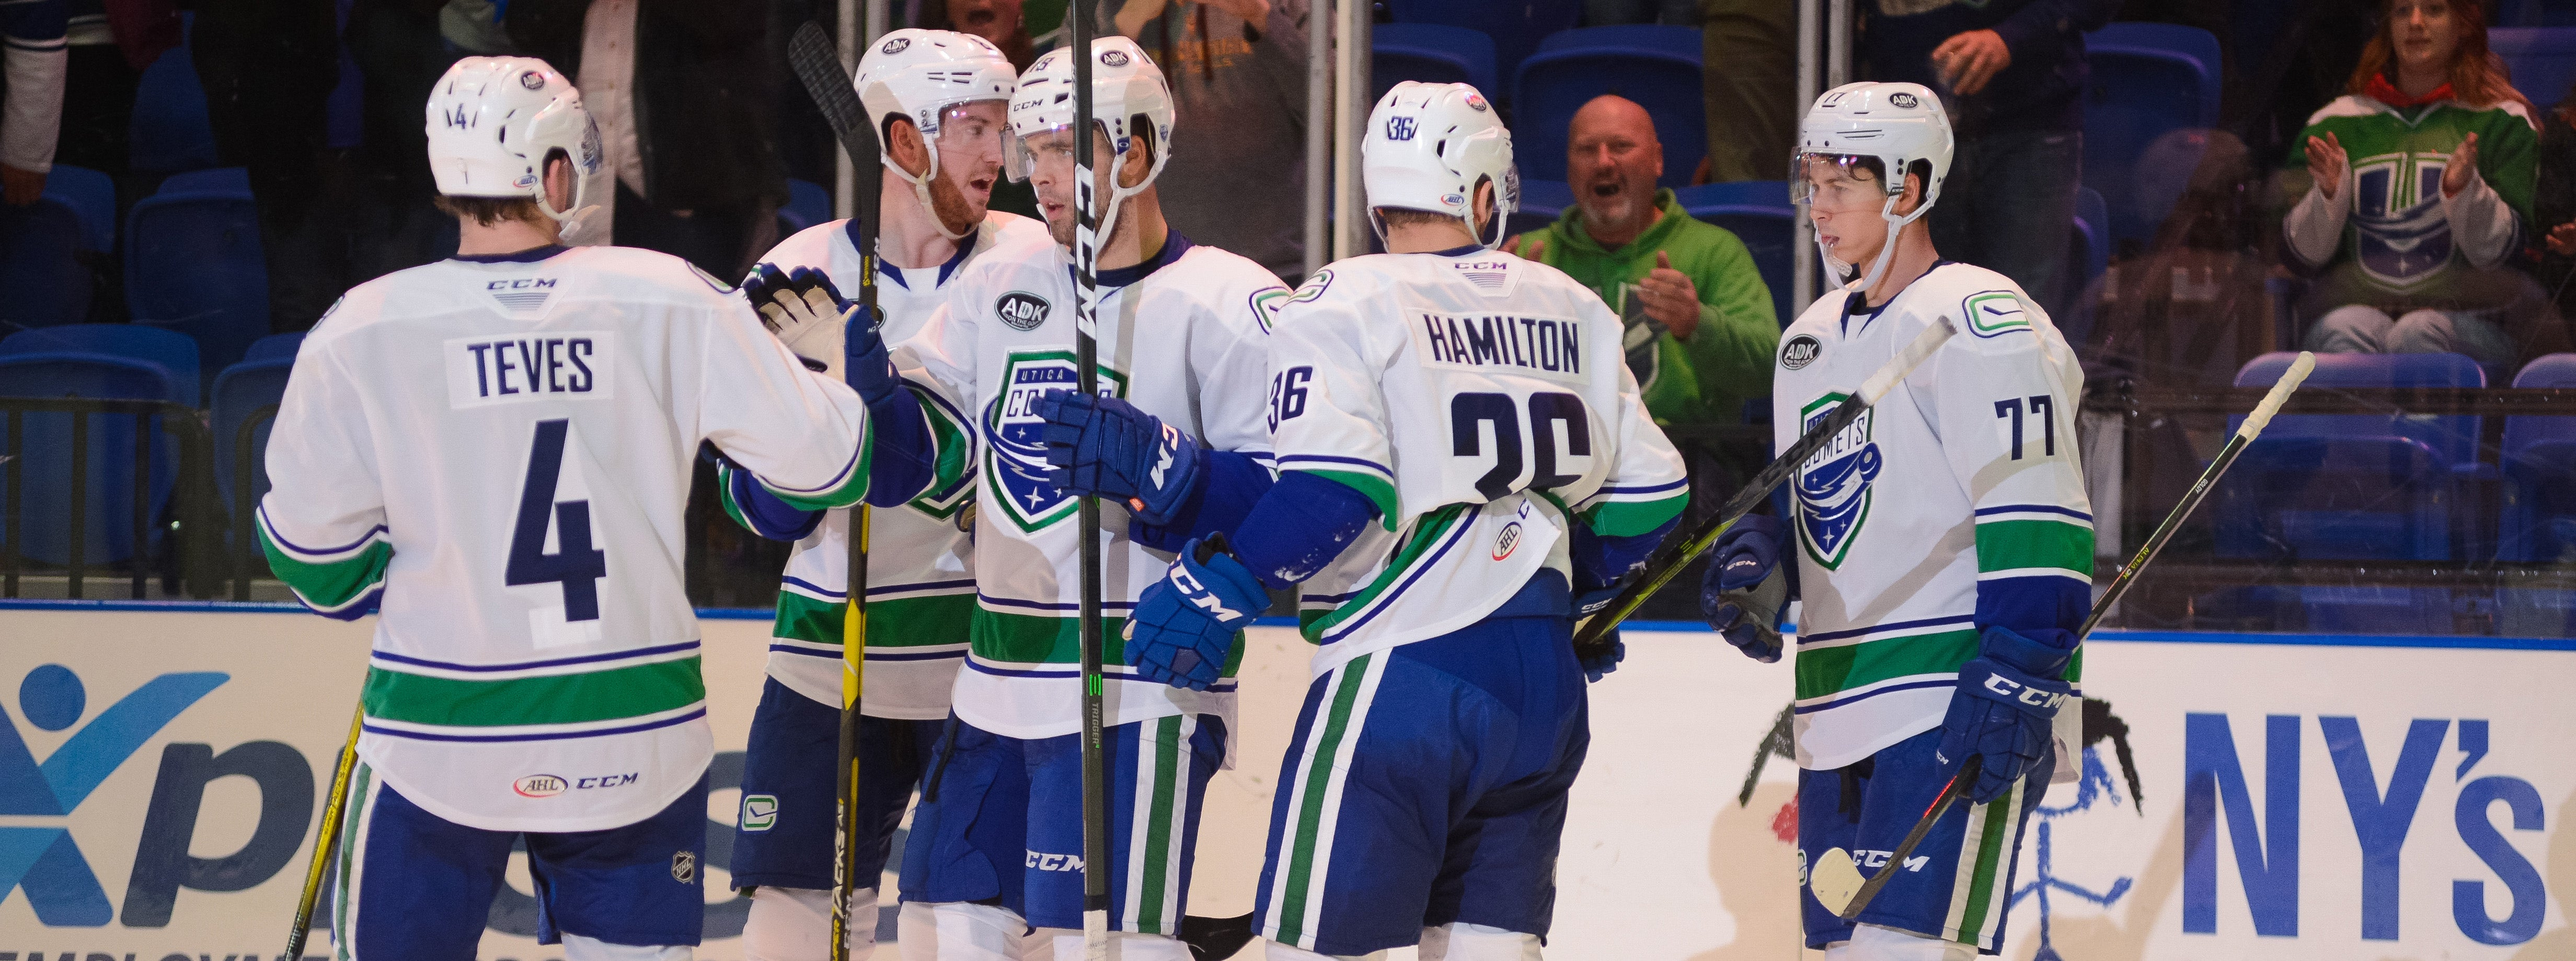 COMETS DOMINATE CRUNCH IN HOME OPENER